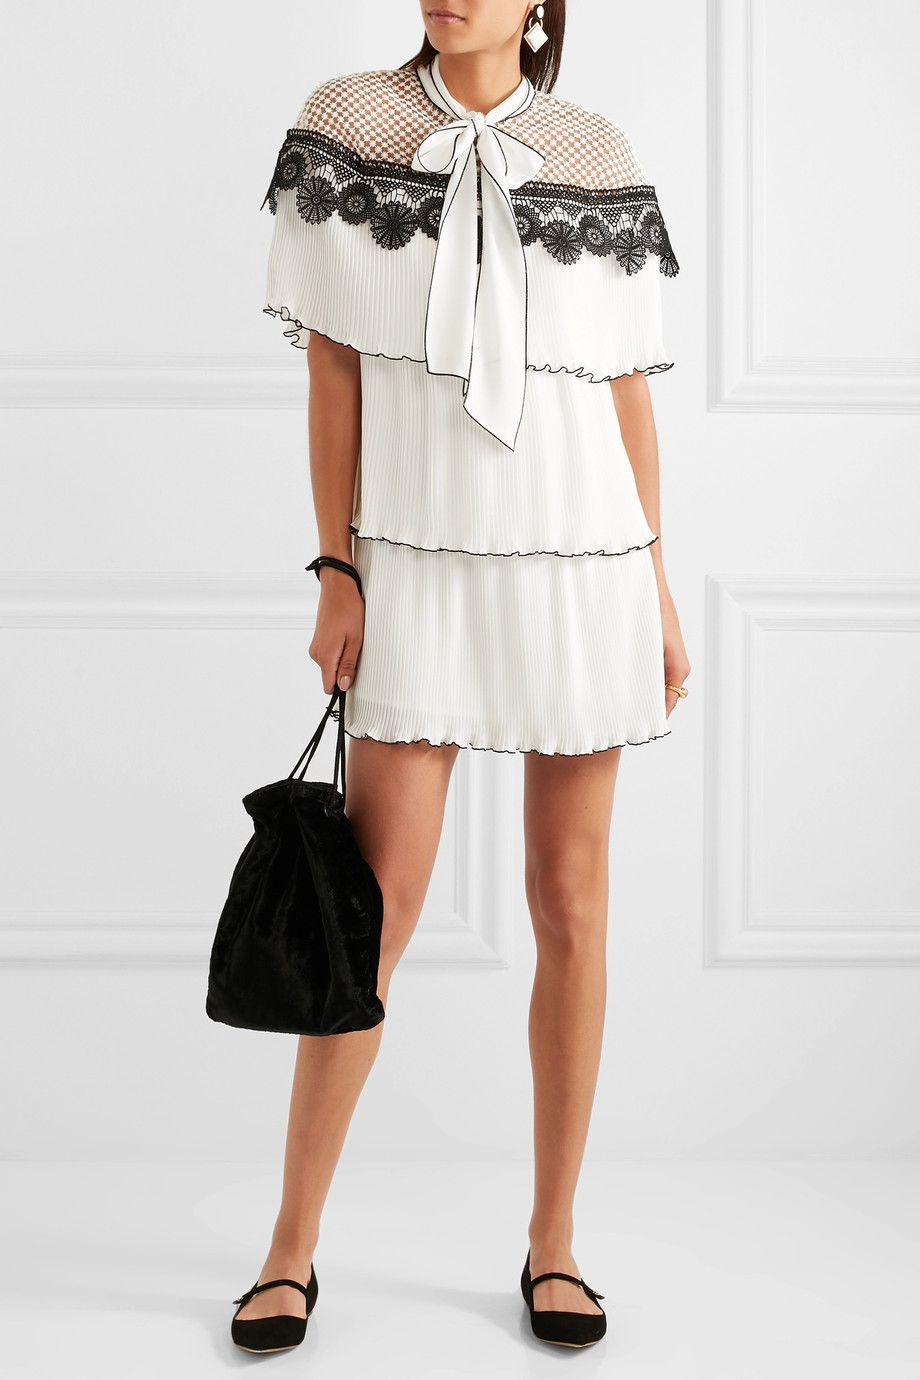 Pin By Everything Things On Outfits 8 Dresses White Mini Dress